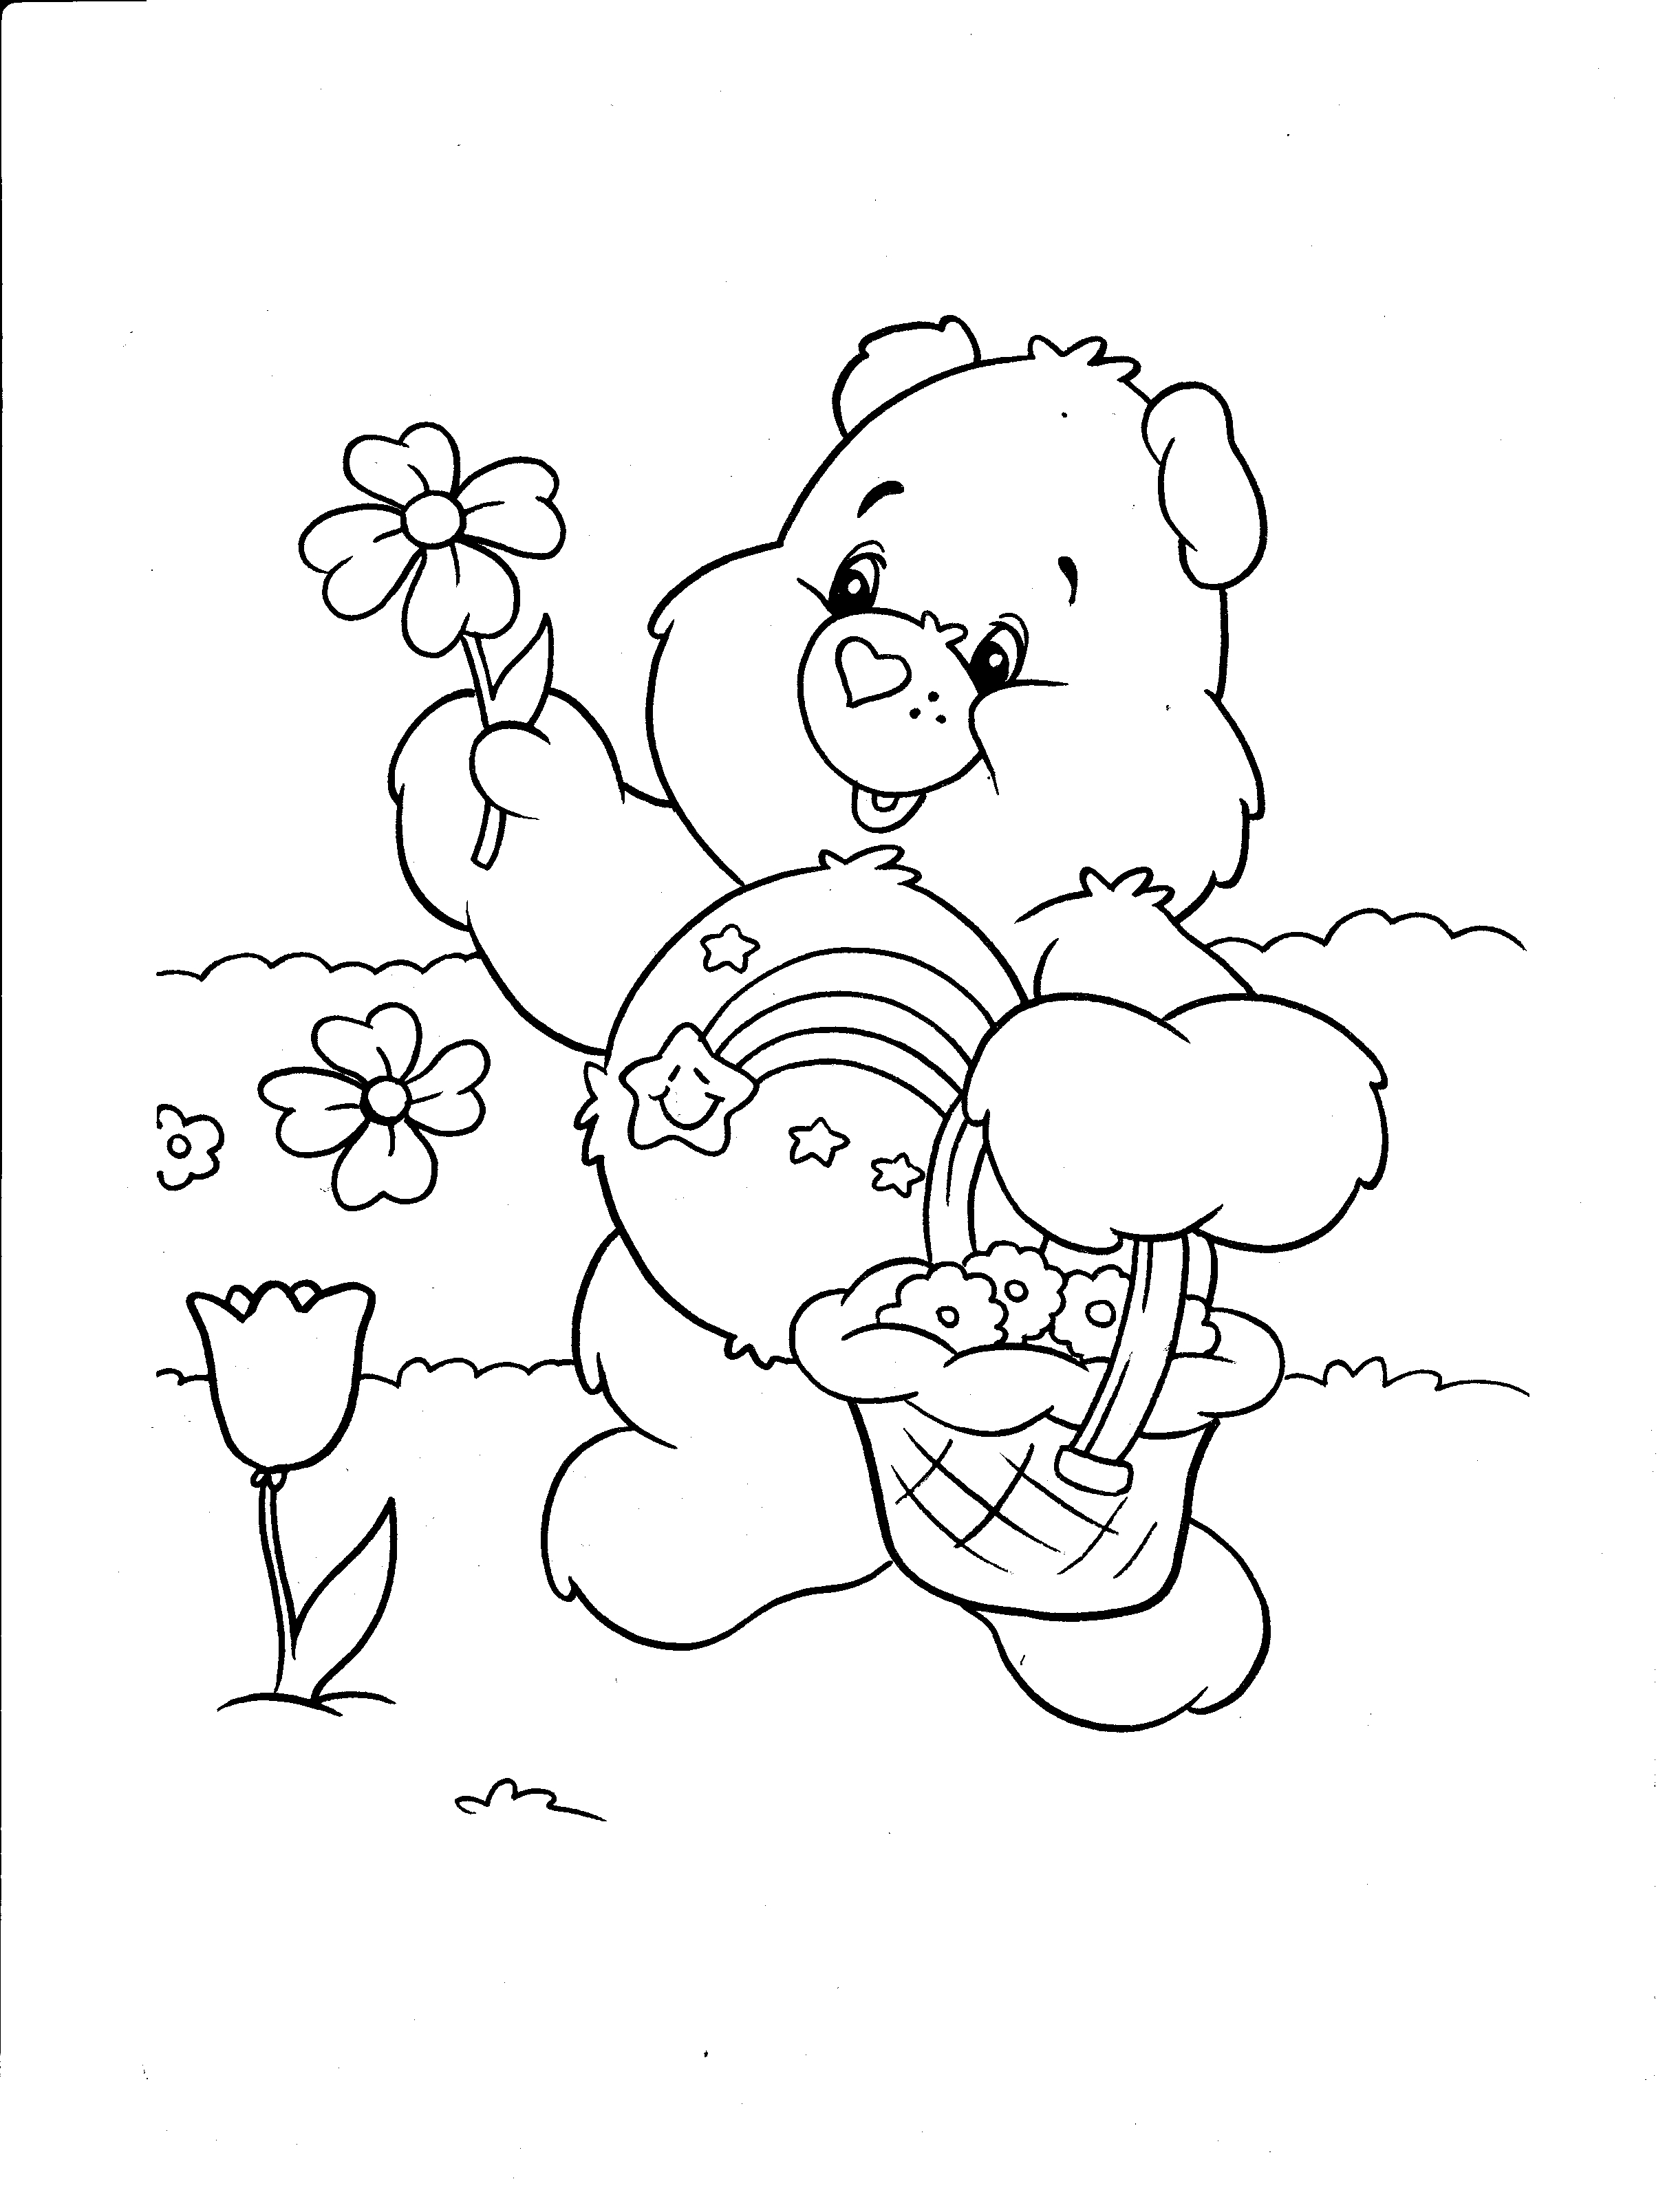 Free printable care bear coloring pages for kids for Free coloring book pages to print